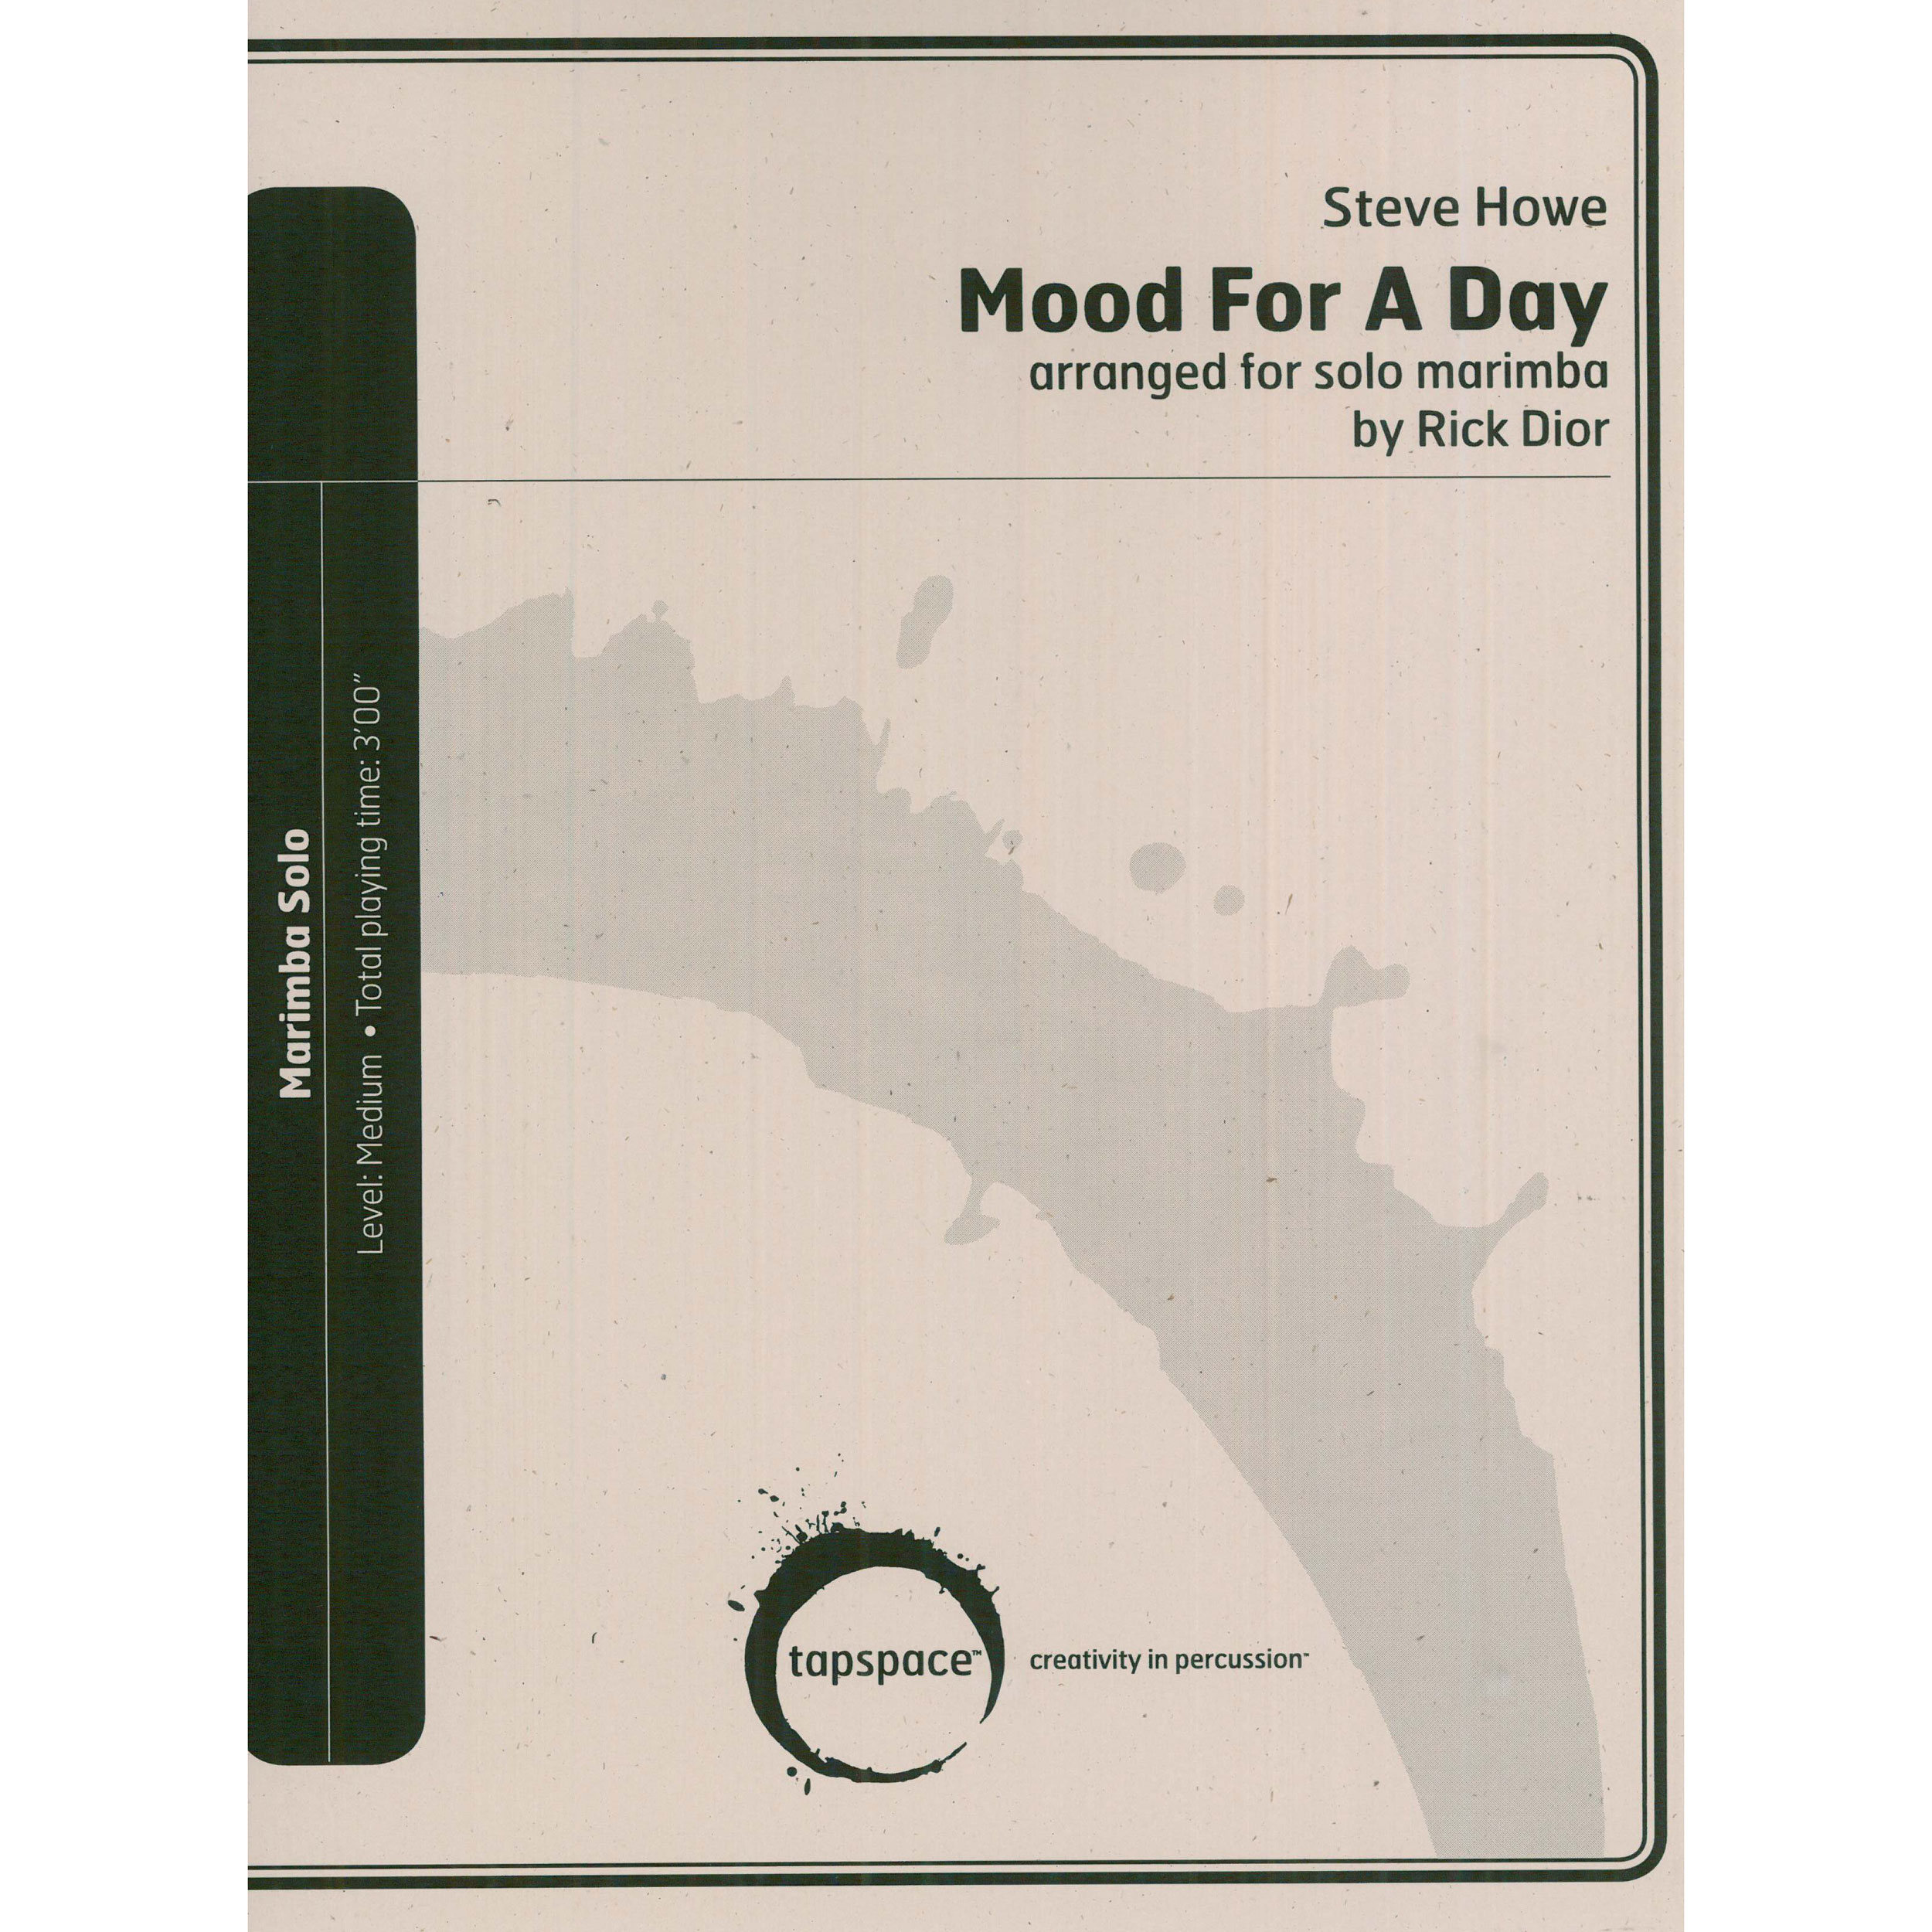 Mood for a Day by Steve Howe (Yes) arr. Rick Dior